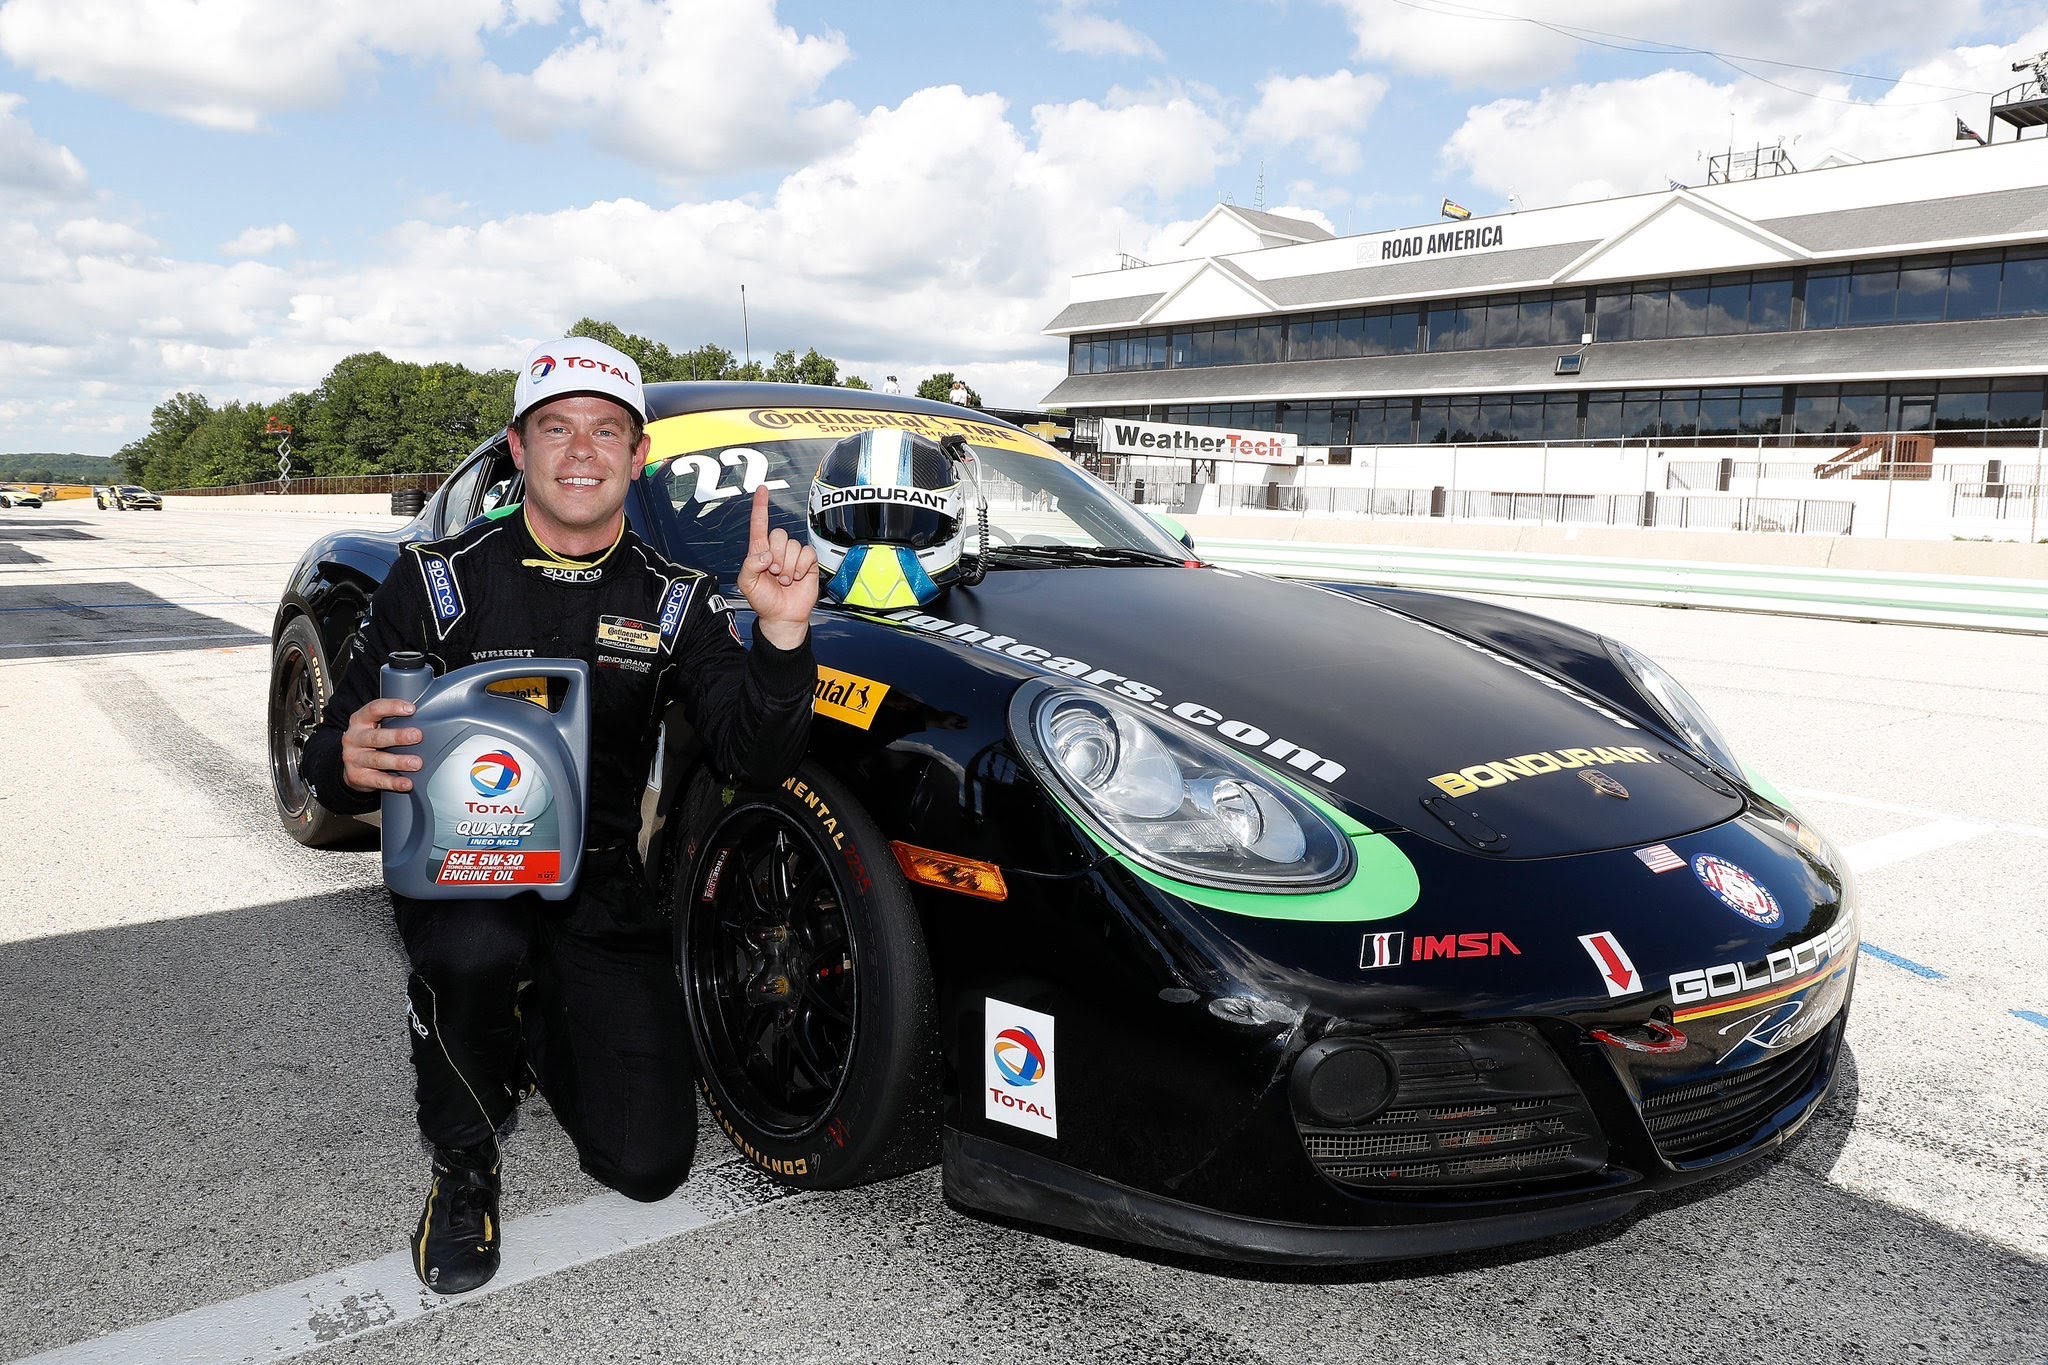 IMSA Continental Challenge Series - Competed in the ST and GS categories since 2011.